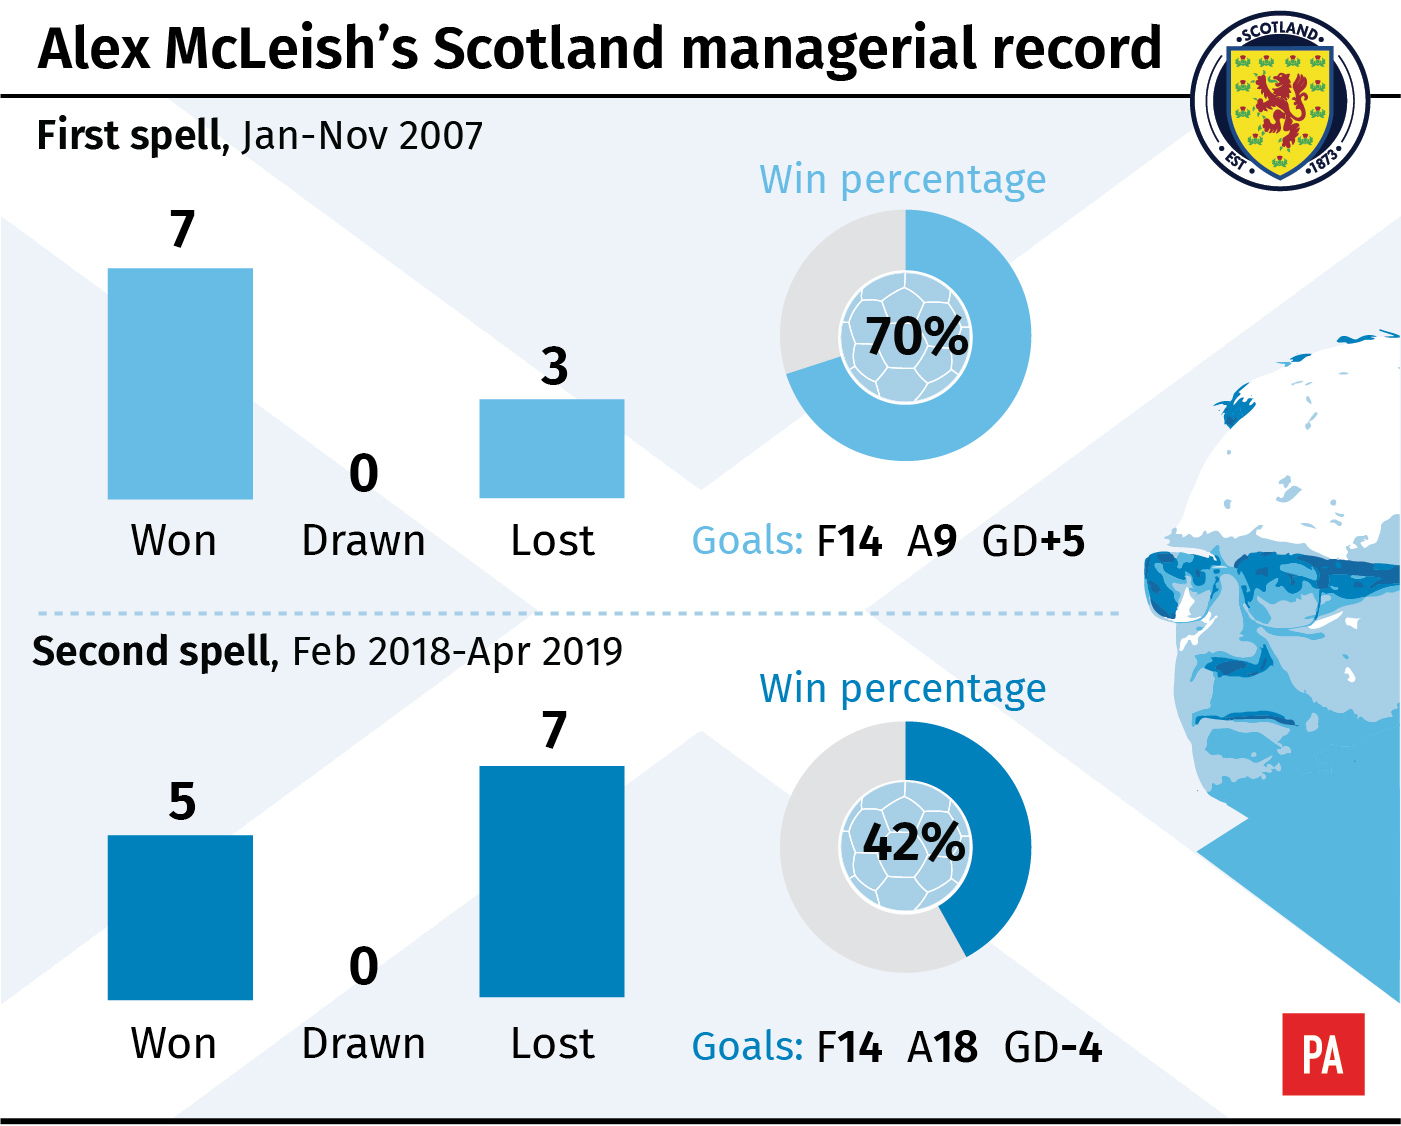 Alex McLeish's Scotland managerial record